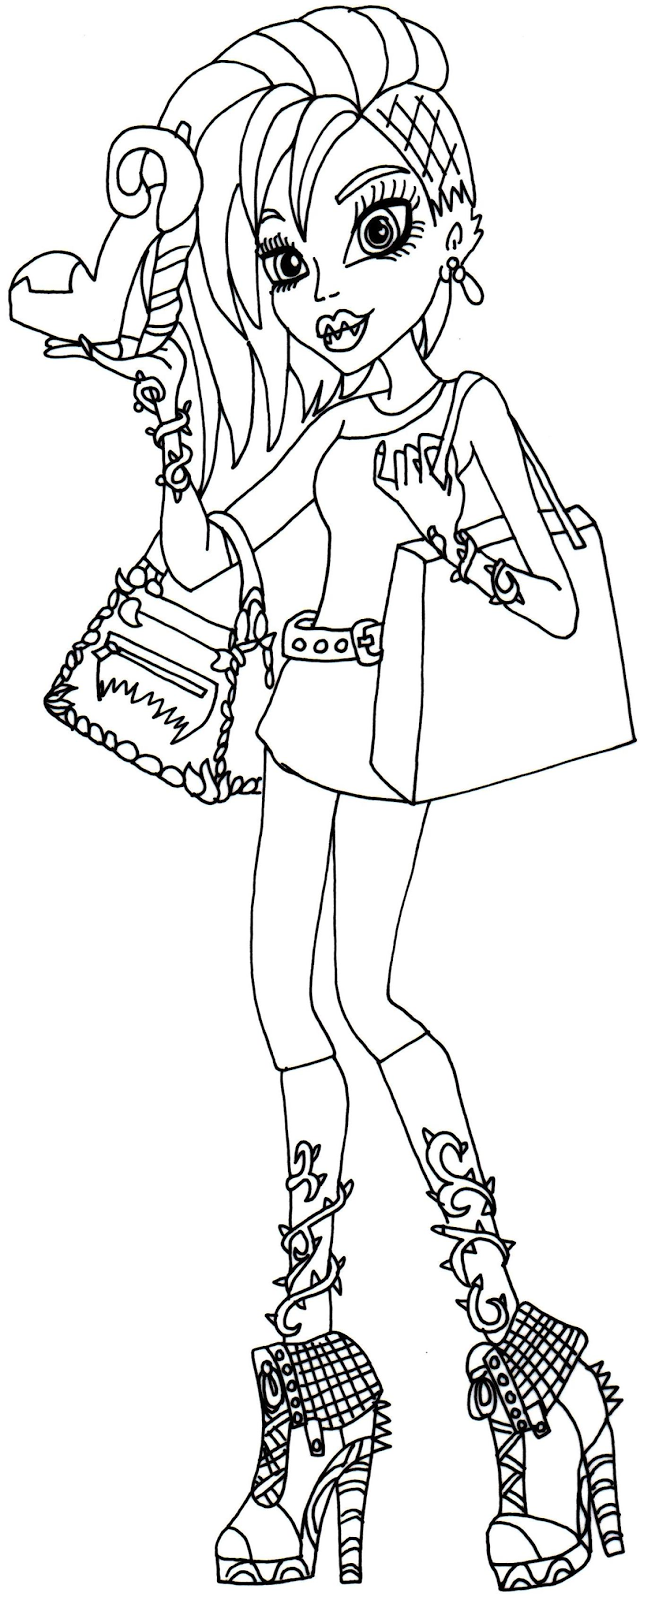 Free printable monster high coloring pages april 2014 for Print monster high coloring pages